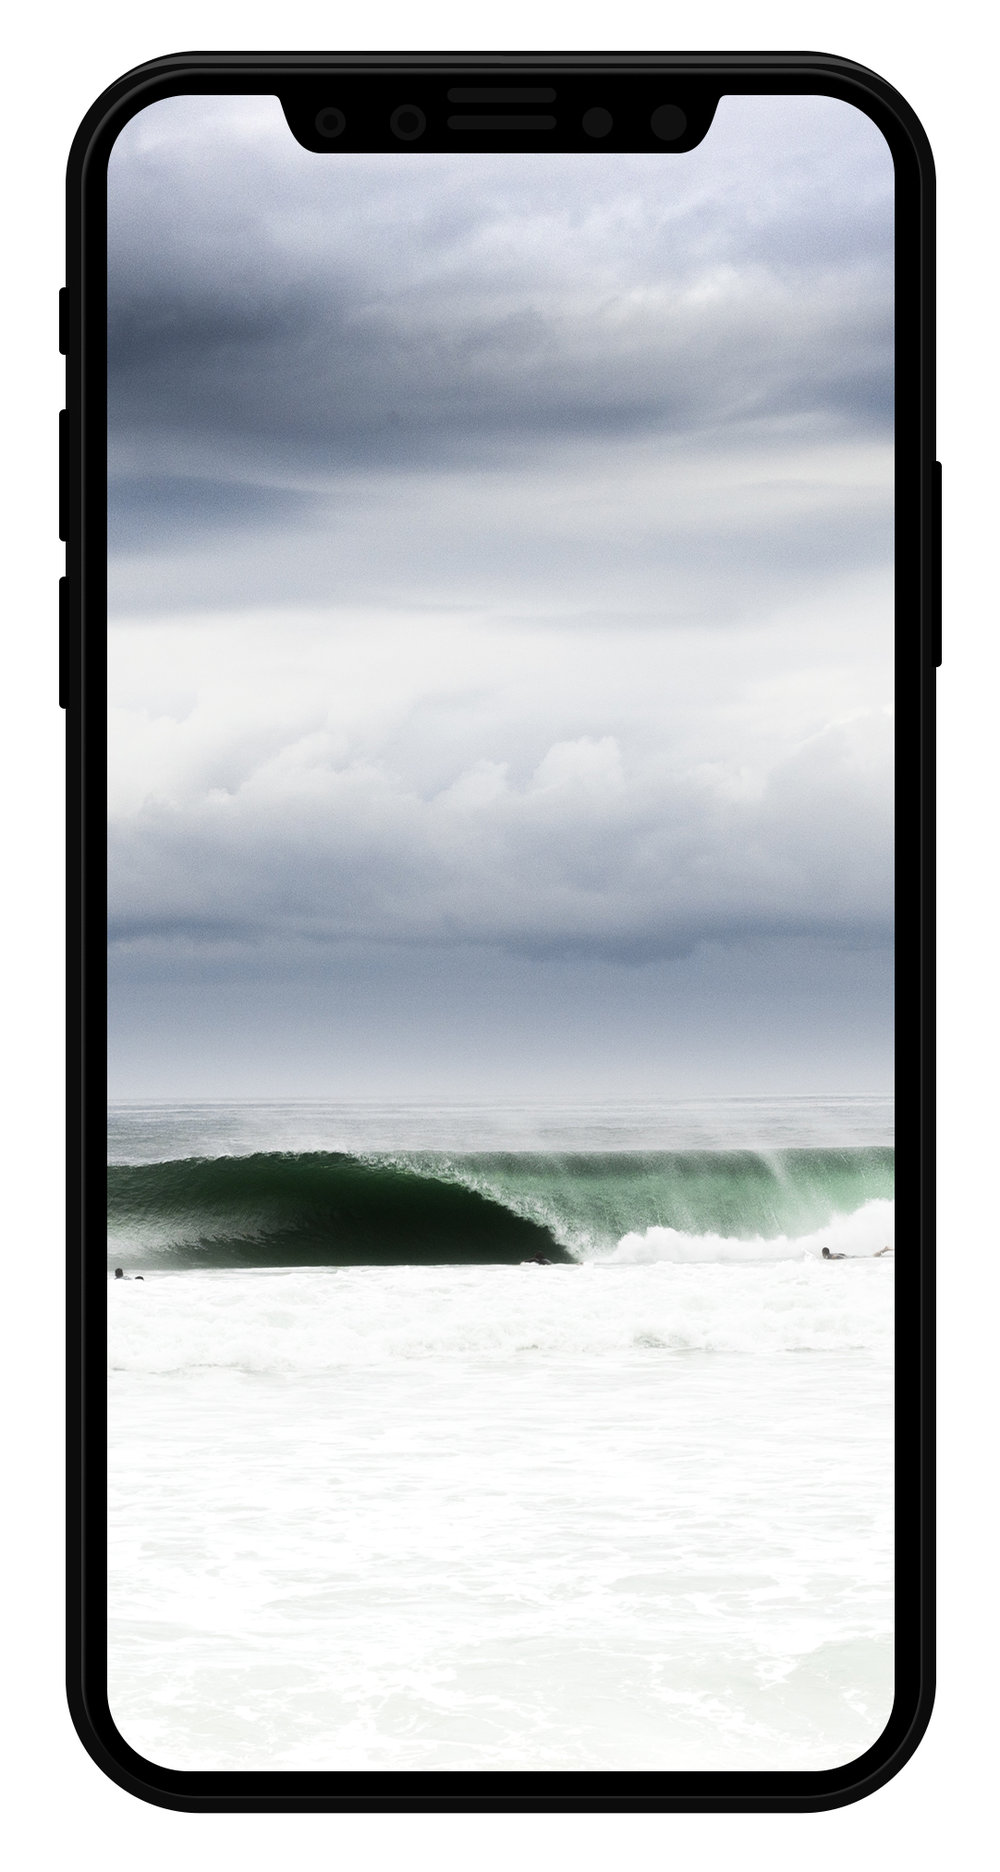 iphone-8-mockupjjjdownloadable.jpg